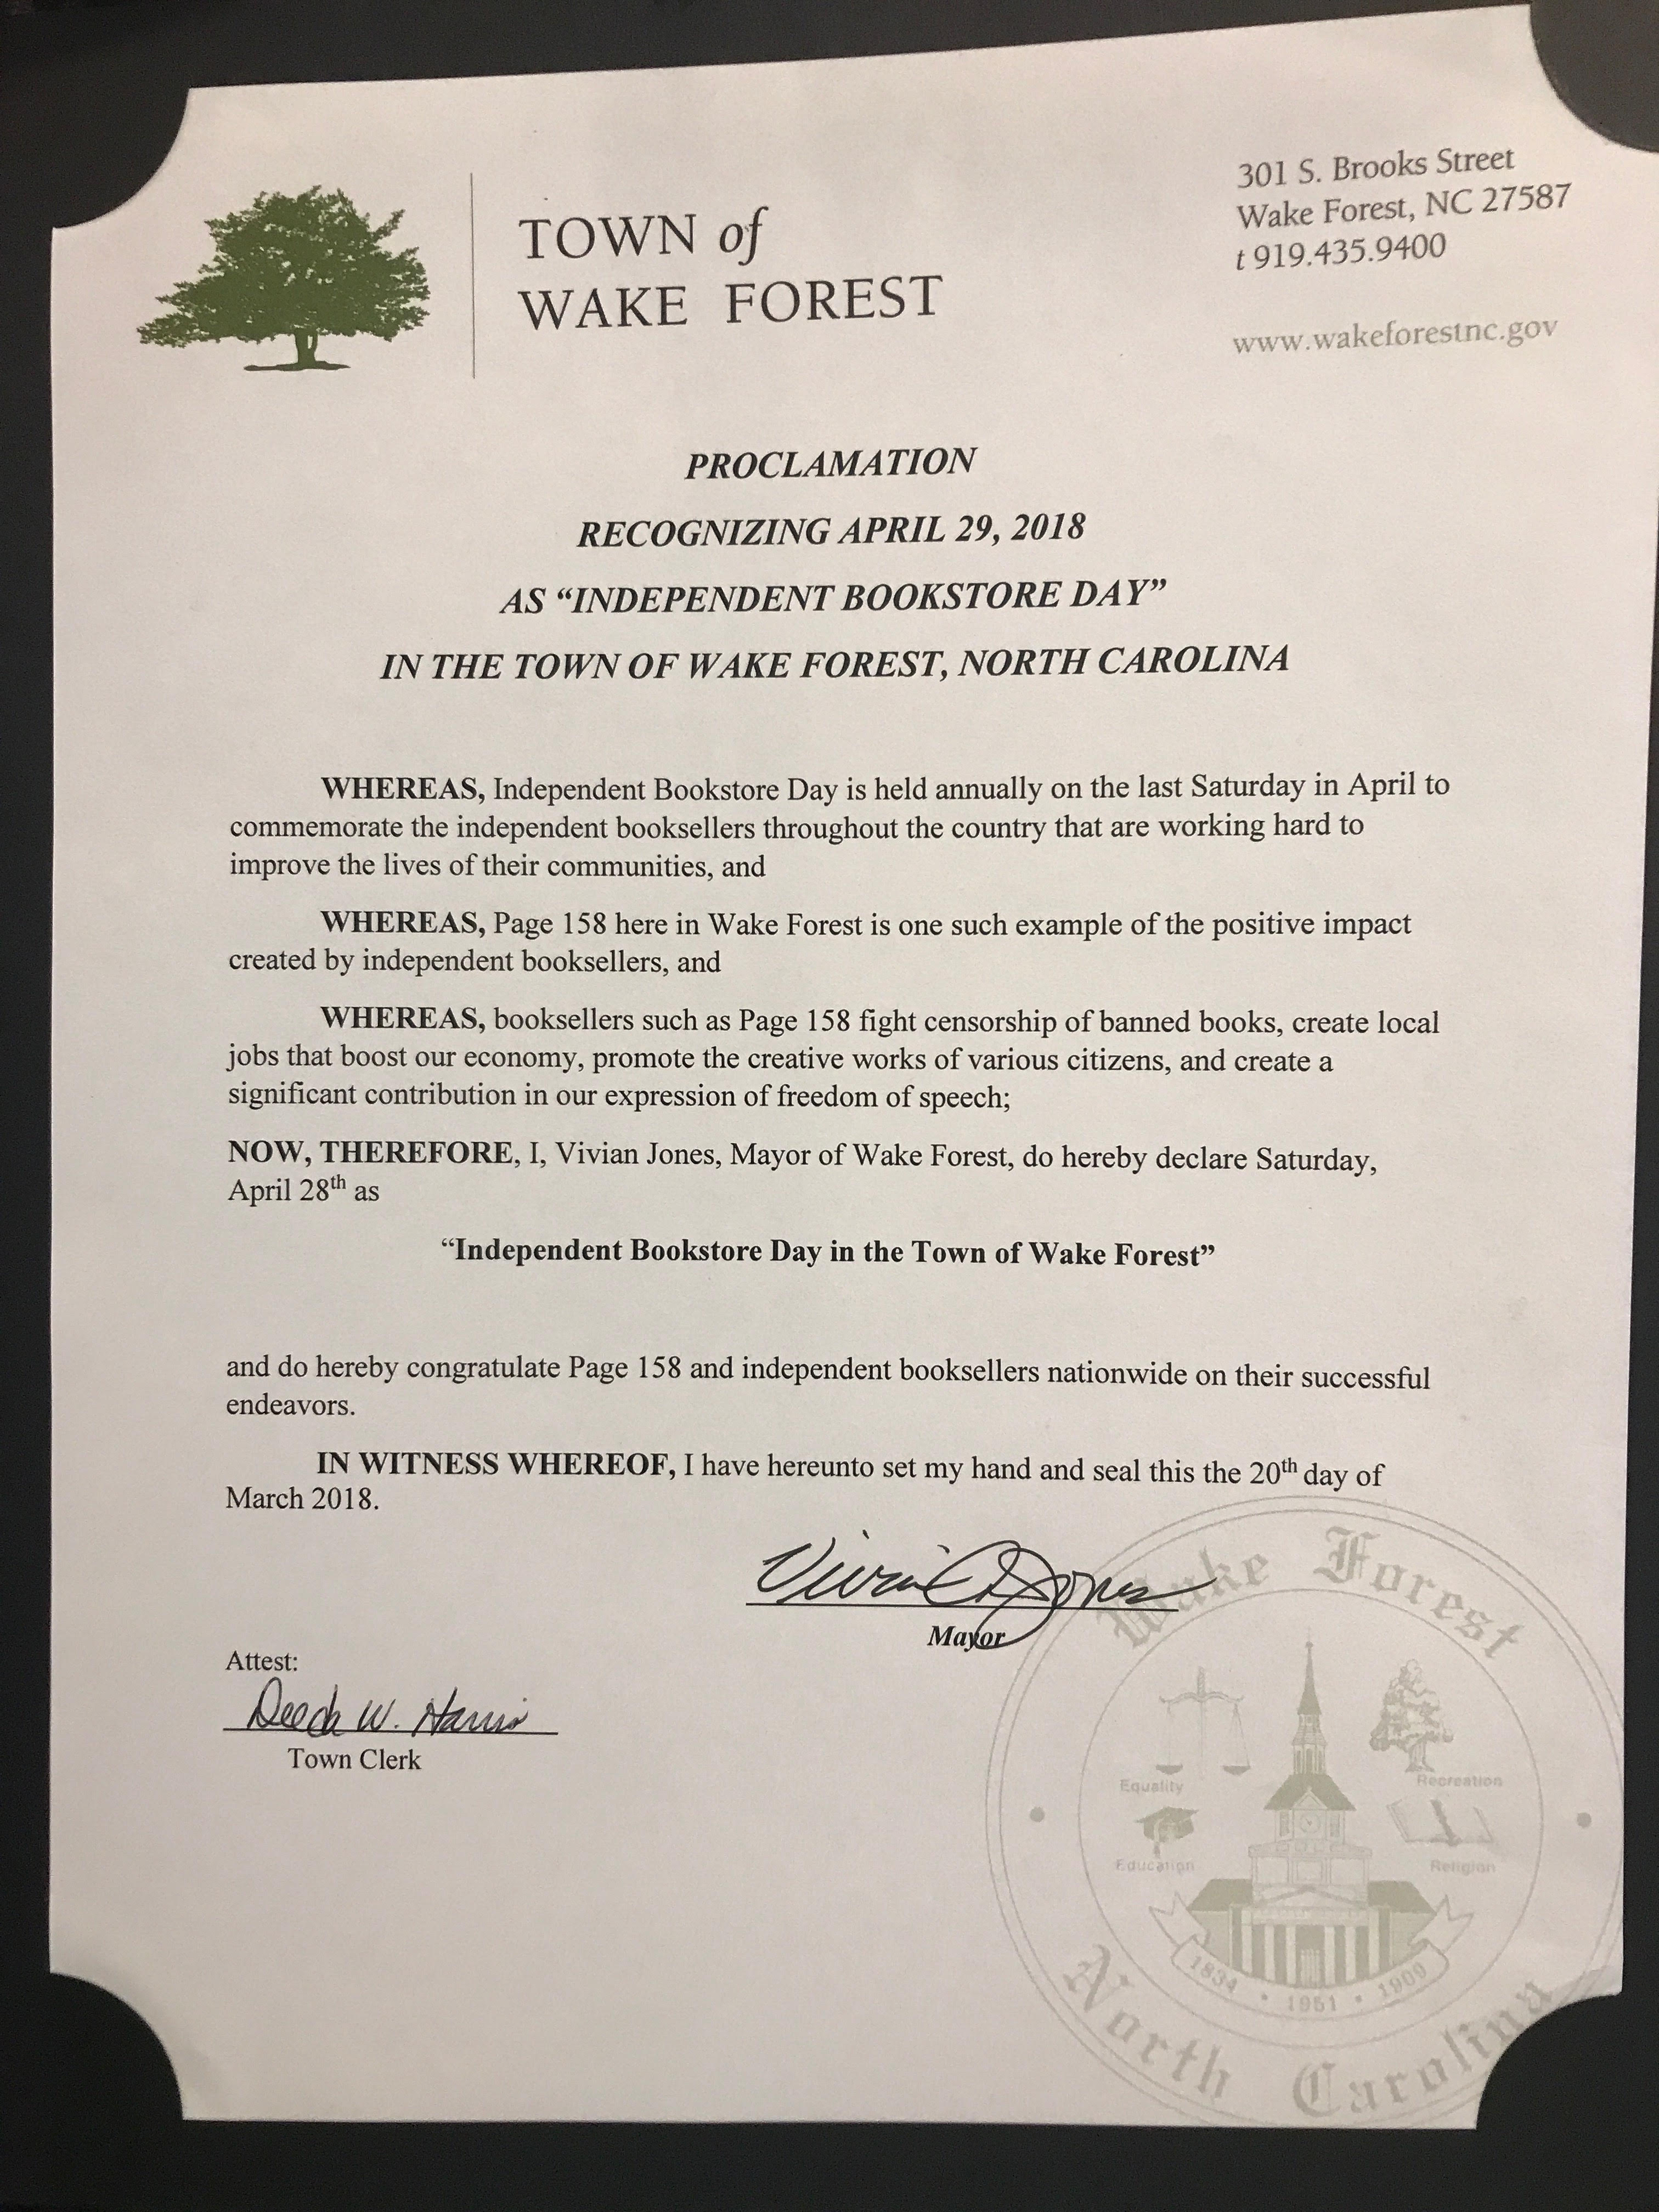 Wake Forest, North Carolina mayor Vivian Jones' proclamation for Independent Bookstore Day